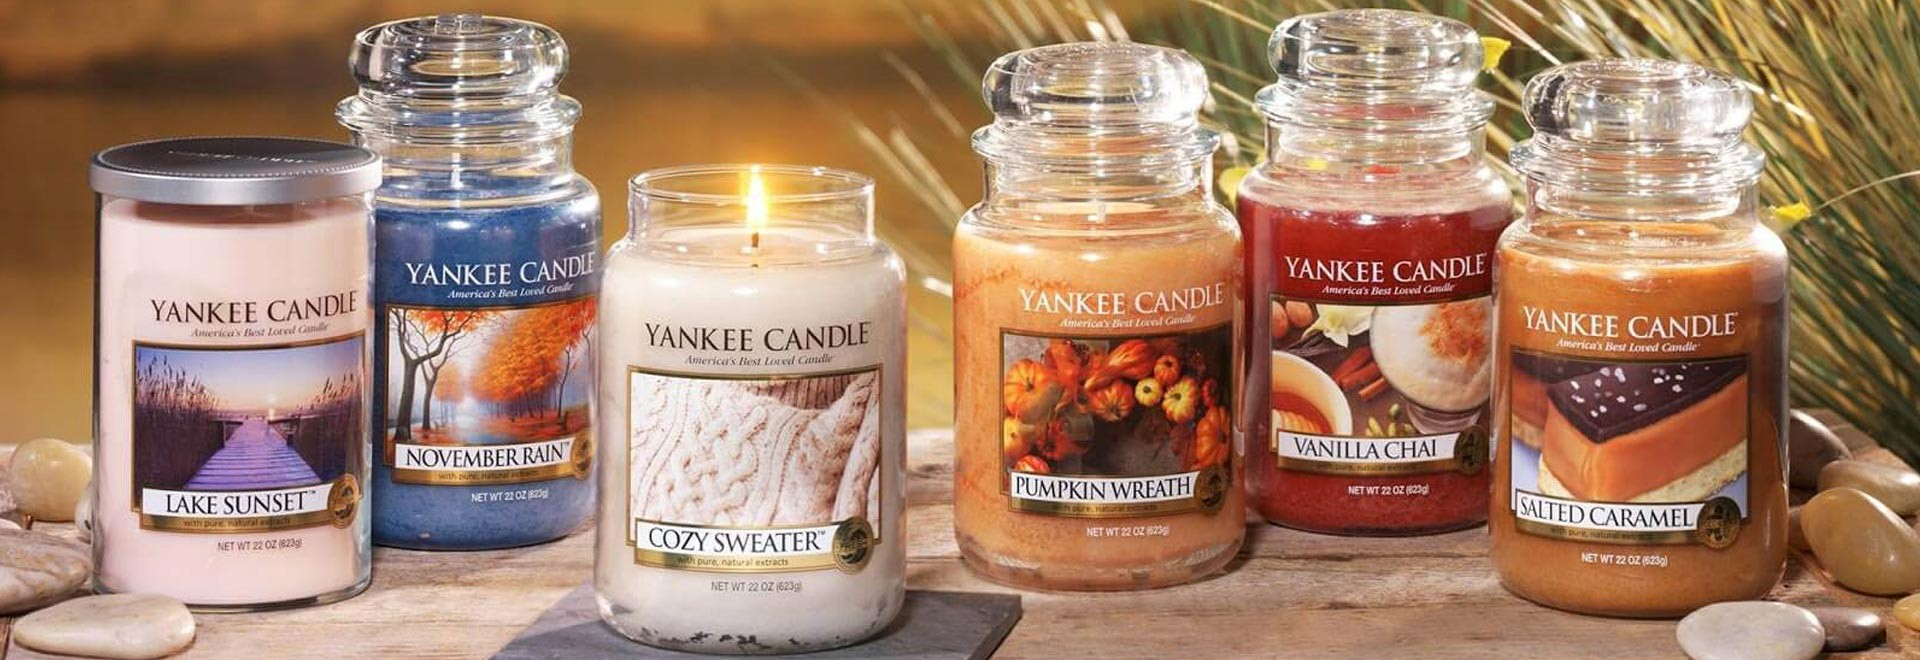 OFFERTE SPECIALI YANKEE CANDLE